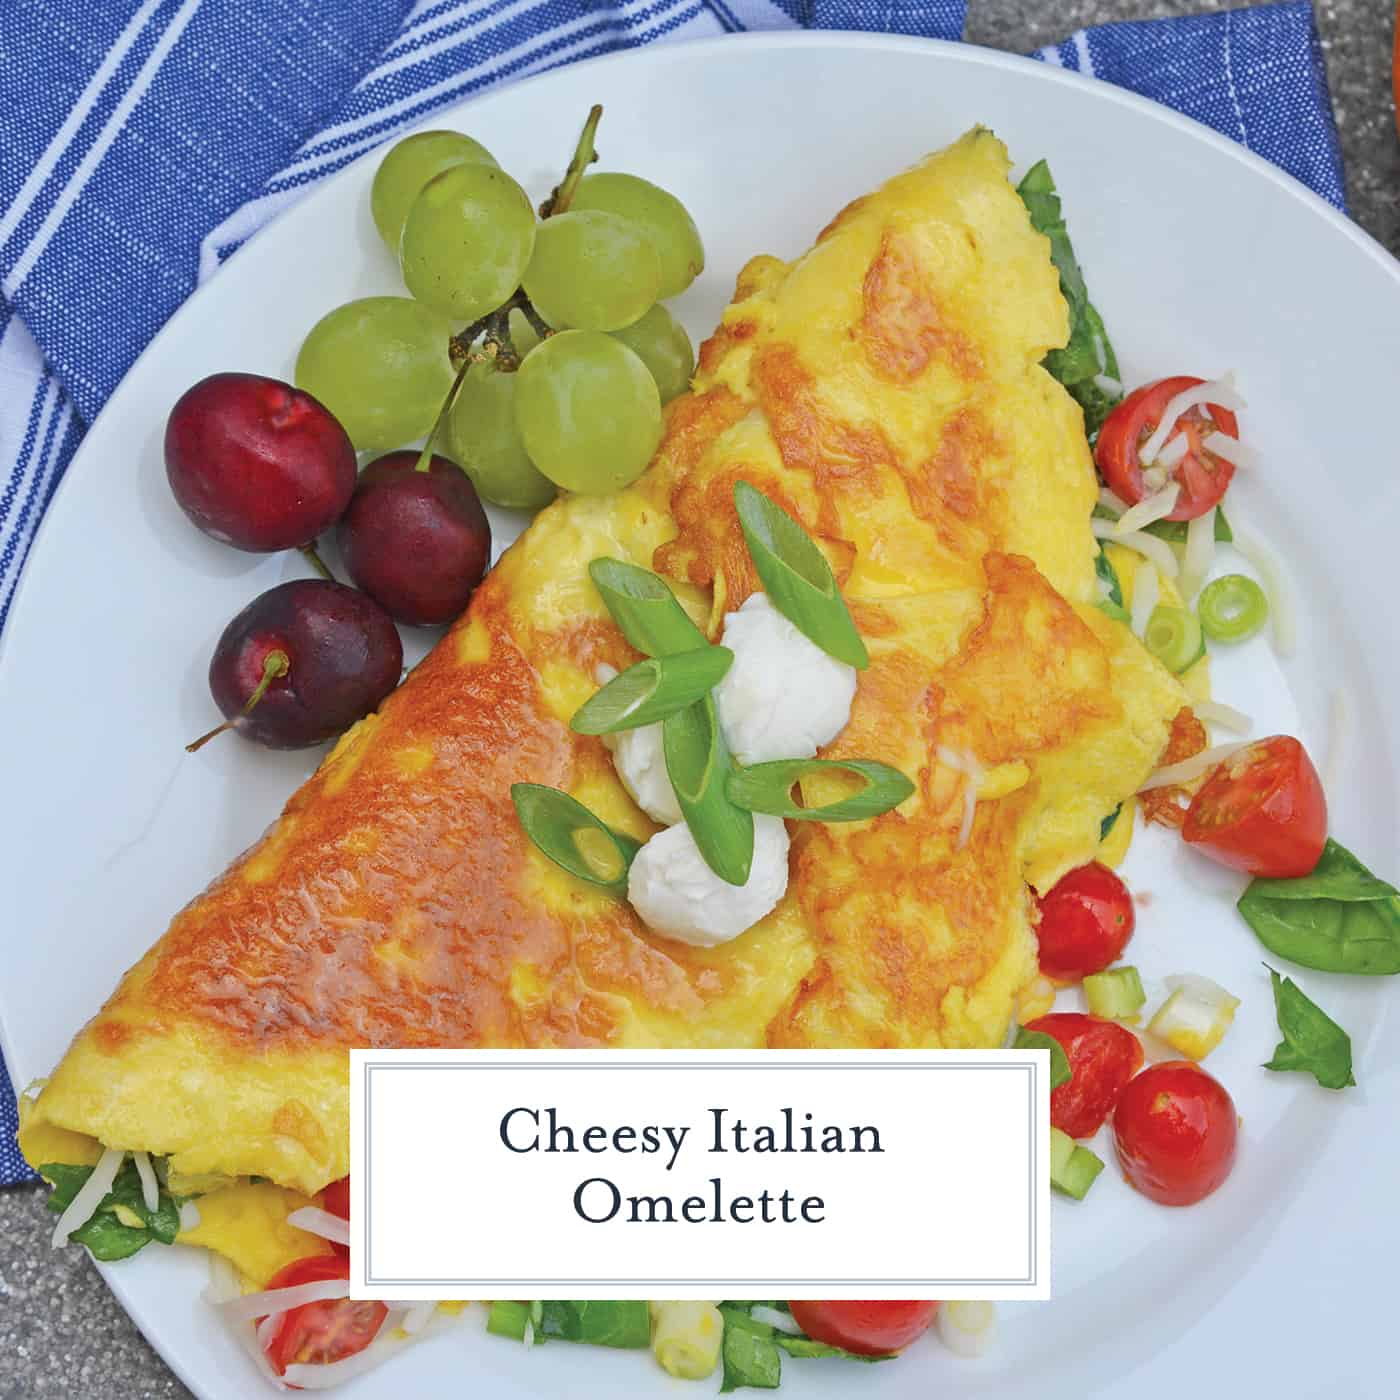 A Shrimp Omelette is a savory omelette with shrimp, scallions, spinach, tomatoes and fresh mozzarella cheese. A perfect recipe for those of us who love brunch! #shrimpomelette #omeletterecipes www.savoryexperiments.com